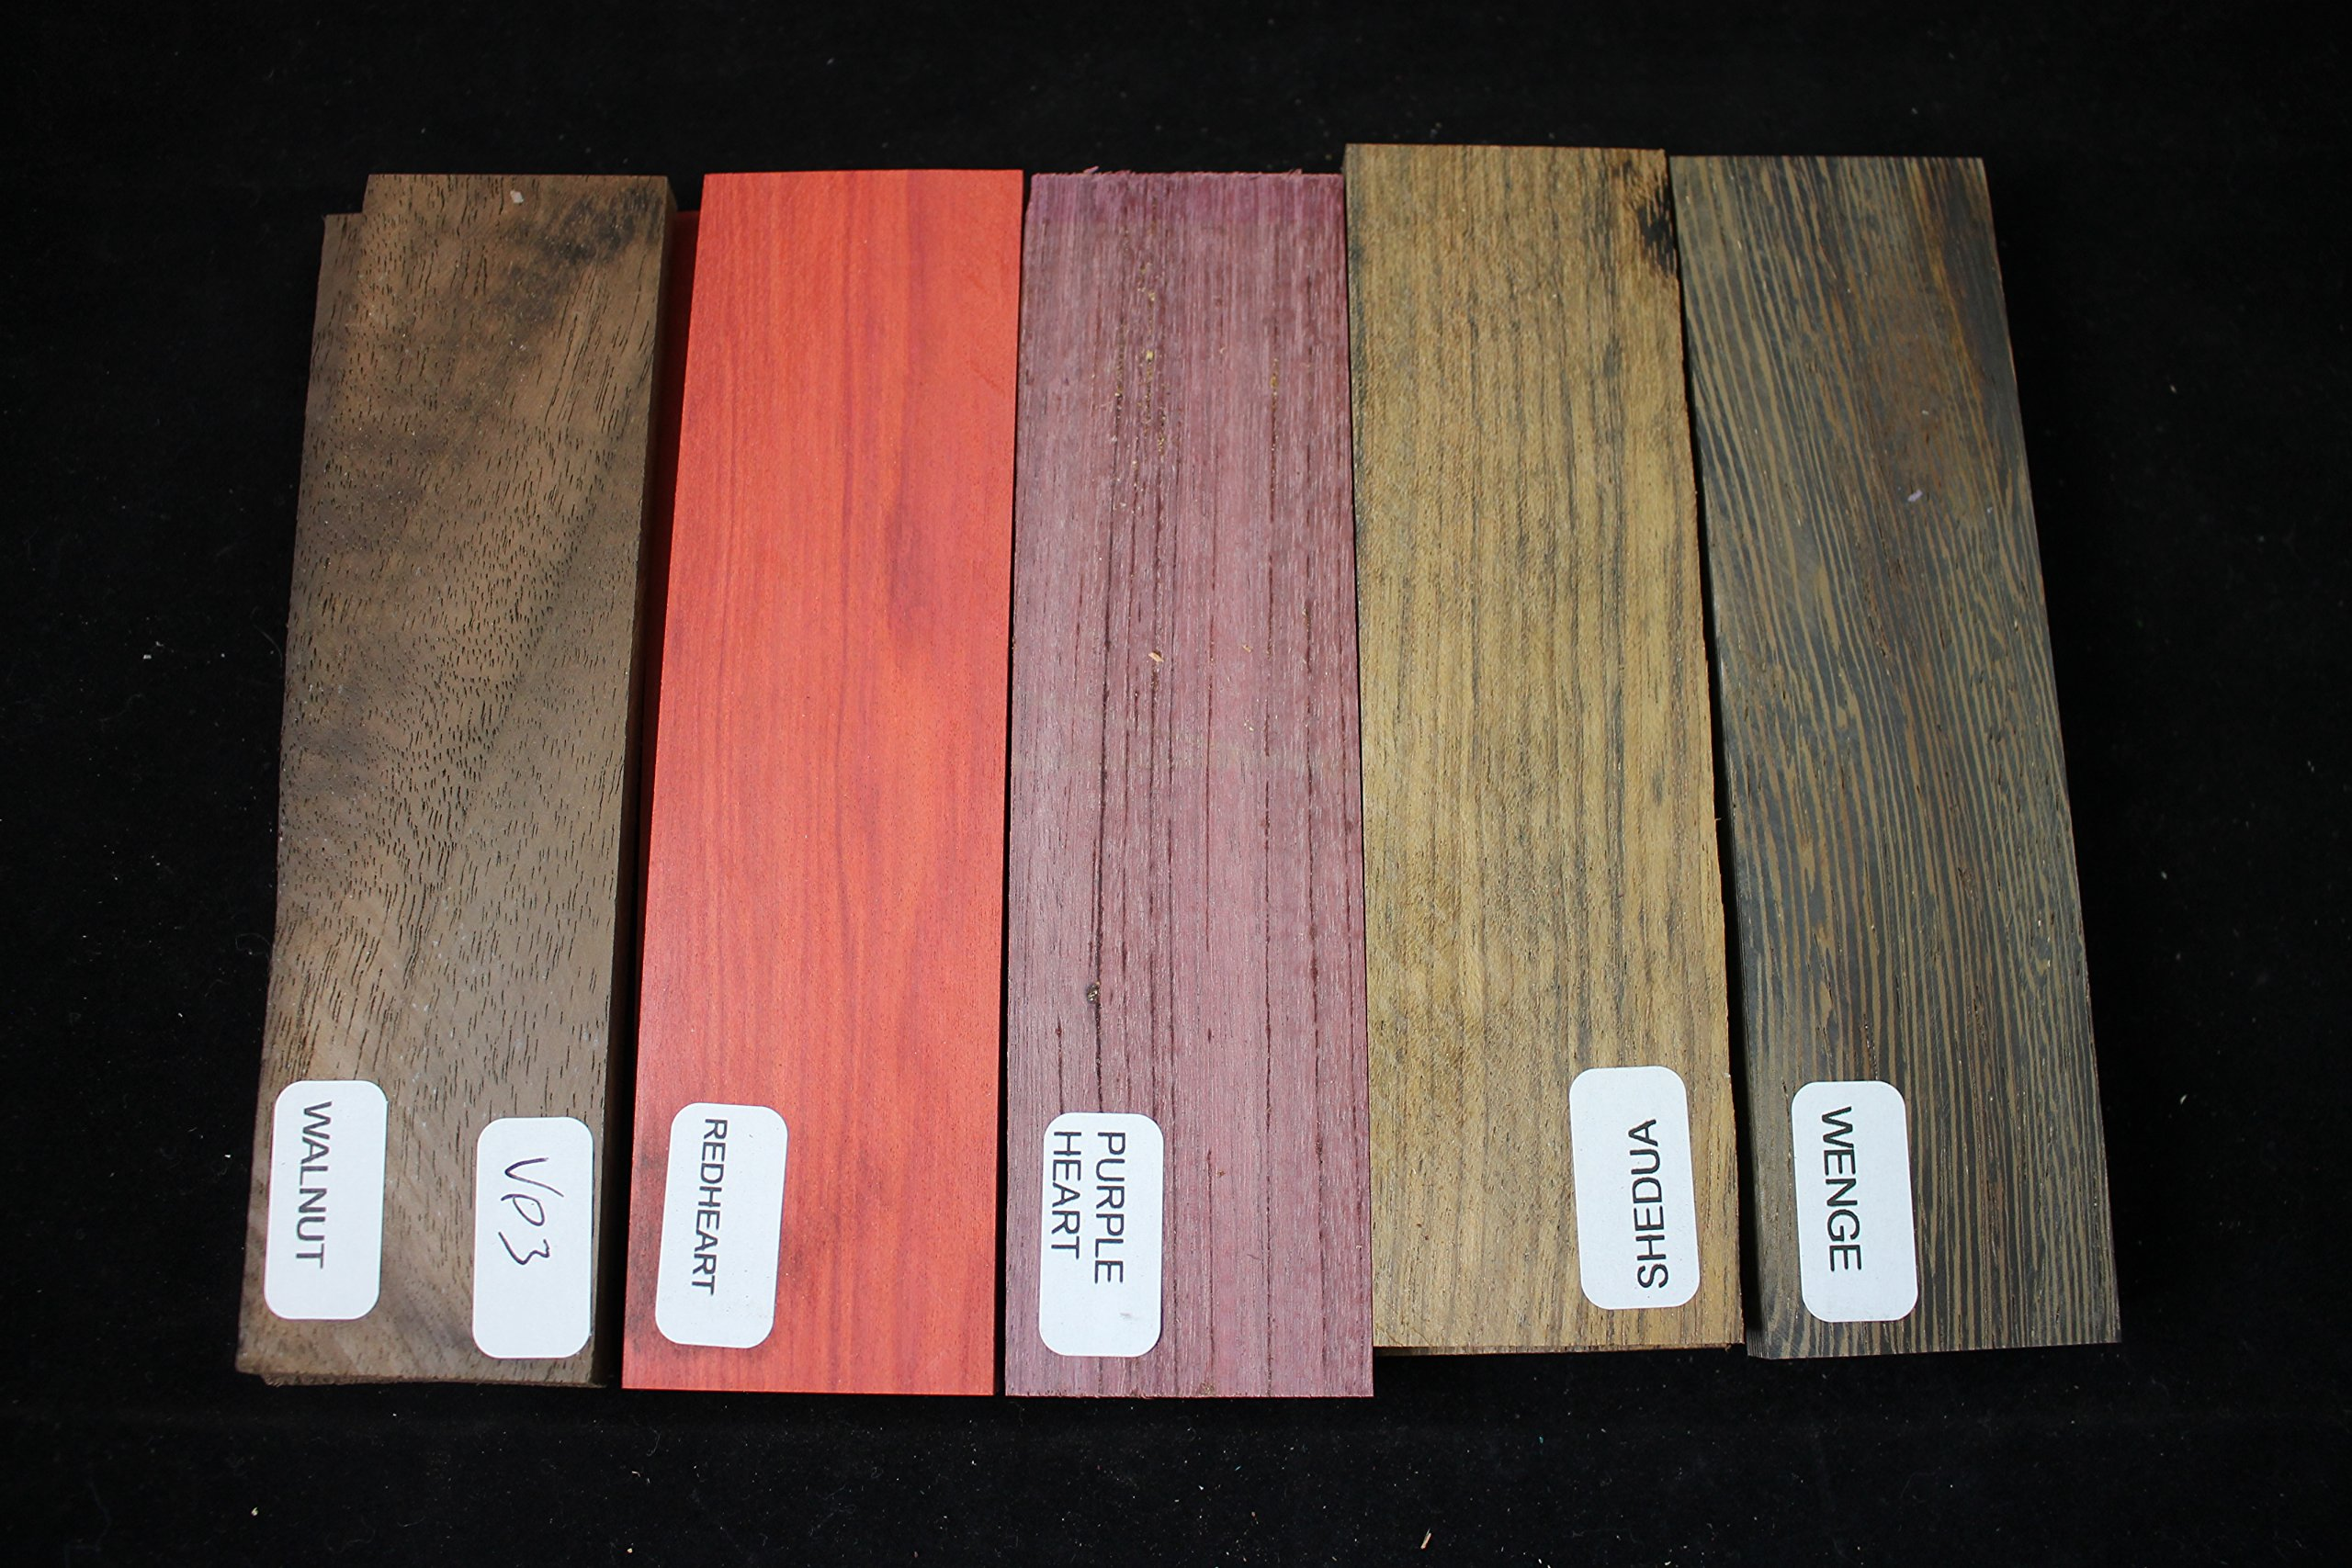 Payne Bros Custom Knives Variety Pack of 5 Wood Scales, 5 INCH, for Knife Making - Gun grps - Craft Supplies (VP13)